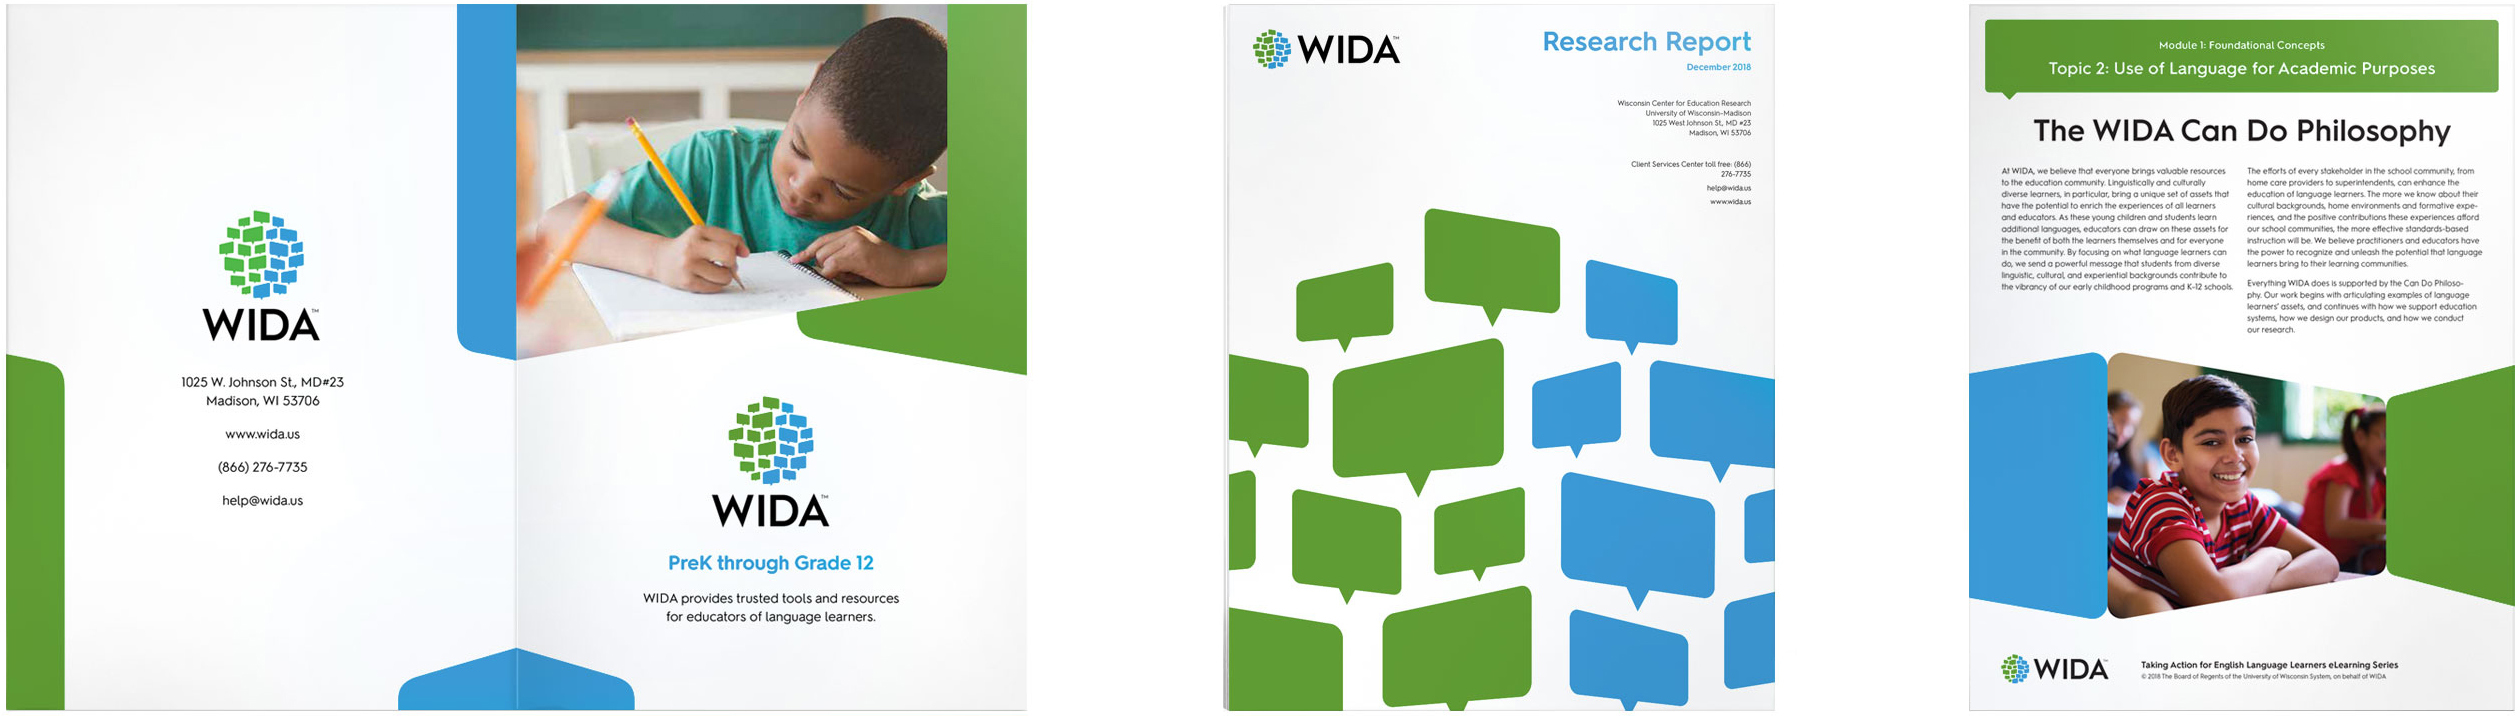 WIDA publications and brochures